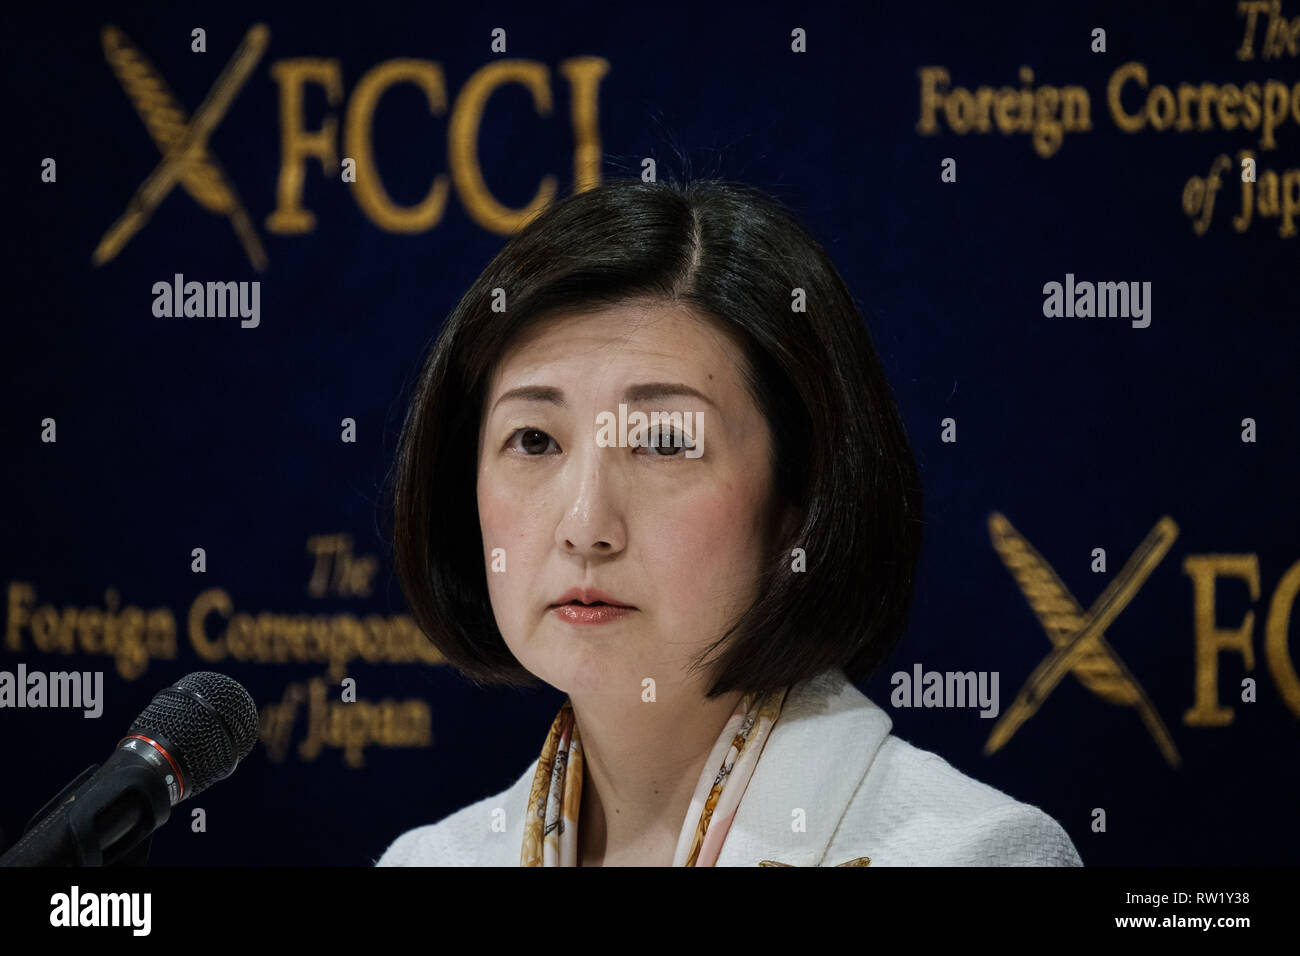 Otsuka Kagu president Kumiko Otsuka answers questions during a press conference at Foreign Press Club on March 04, 2019 in Tokyo Japan. Seeking for expension in Chinese market Kumiko Otsuka talks about an alliance with China's company called High-Lines. March 04, 2019 Credit: Nicolas Datiche/AFLO/Alamy Live News Stock Photo